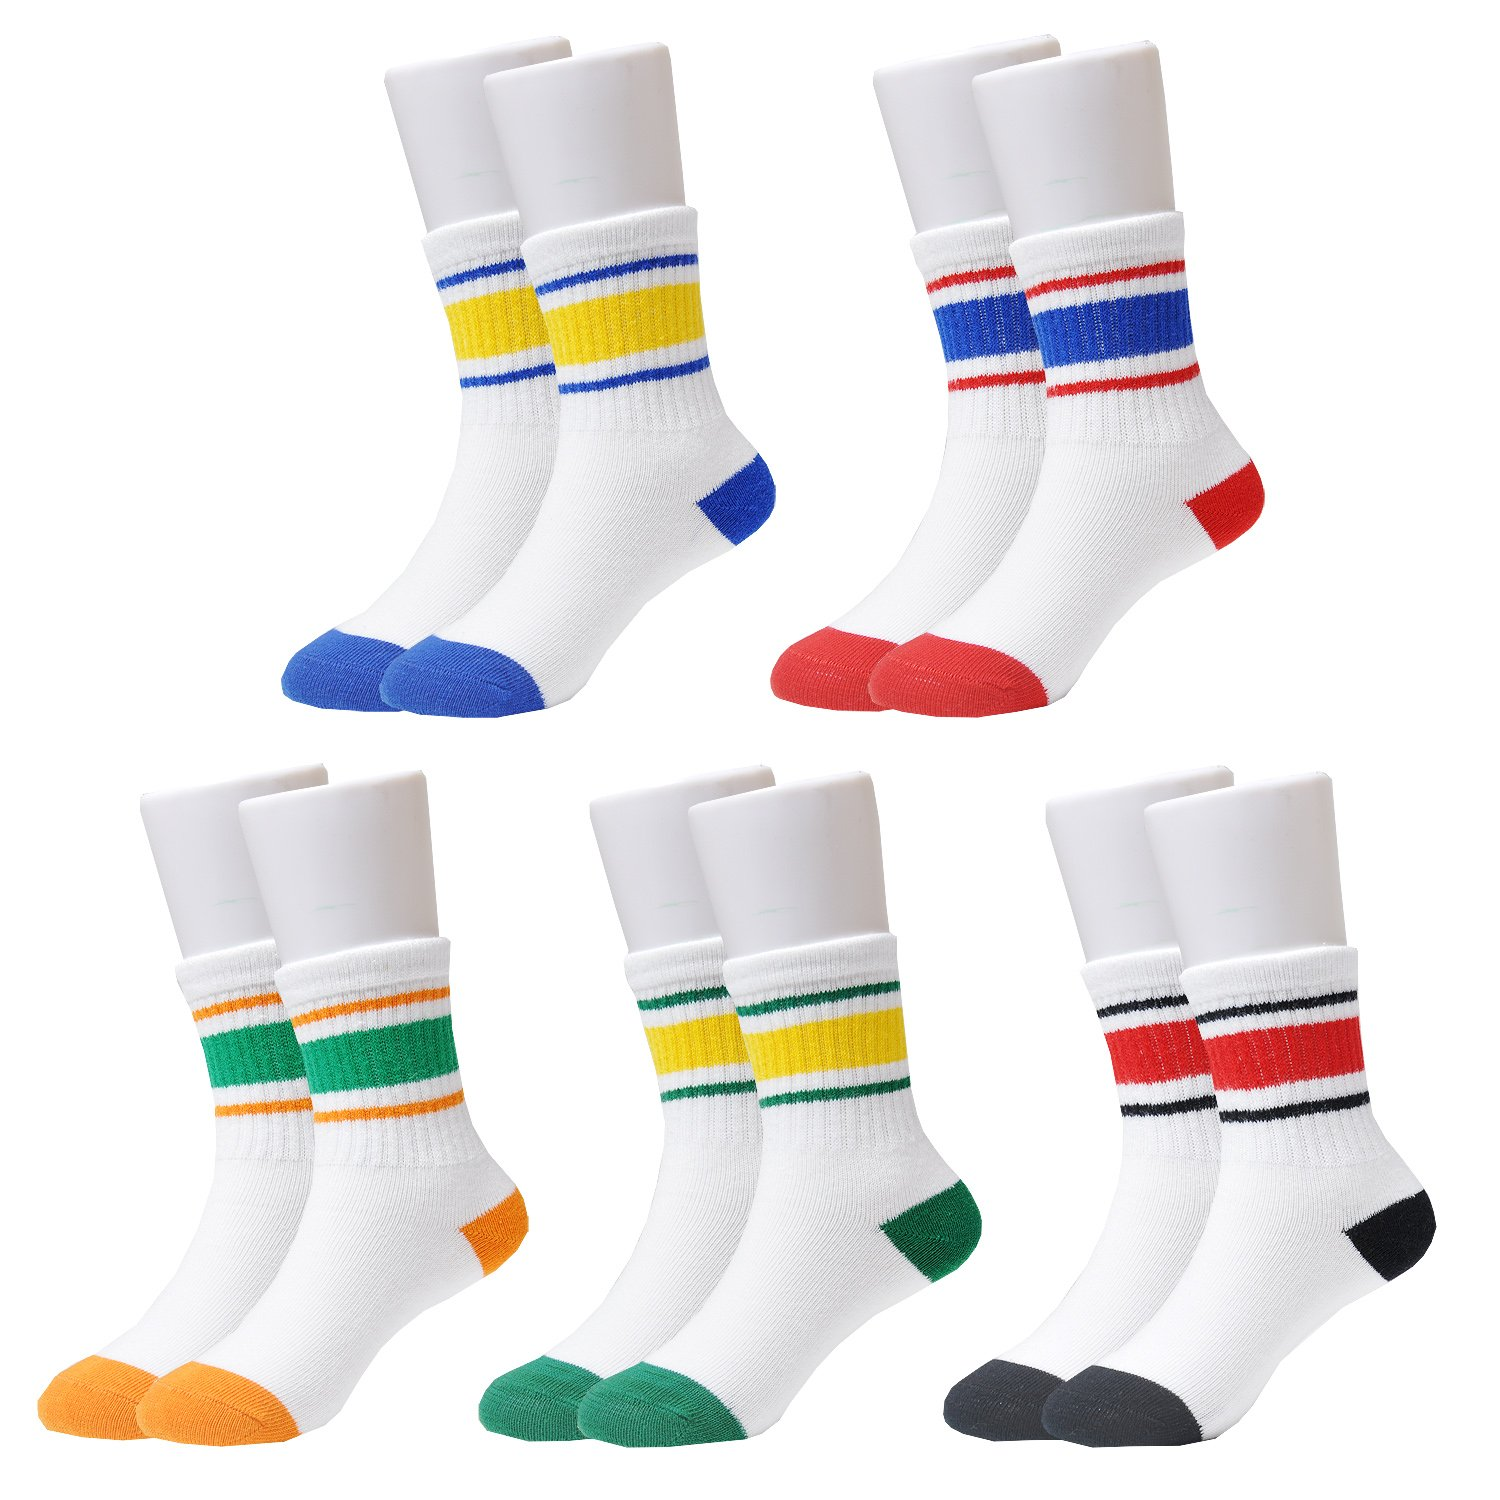 Epeius Kids Boys' Stripes Pattern Cotton Crew Socks 5/6 Pair Pack